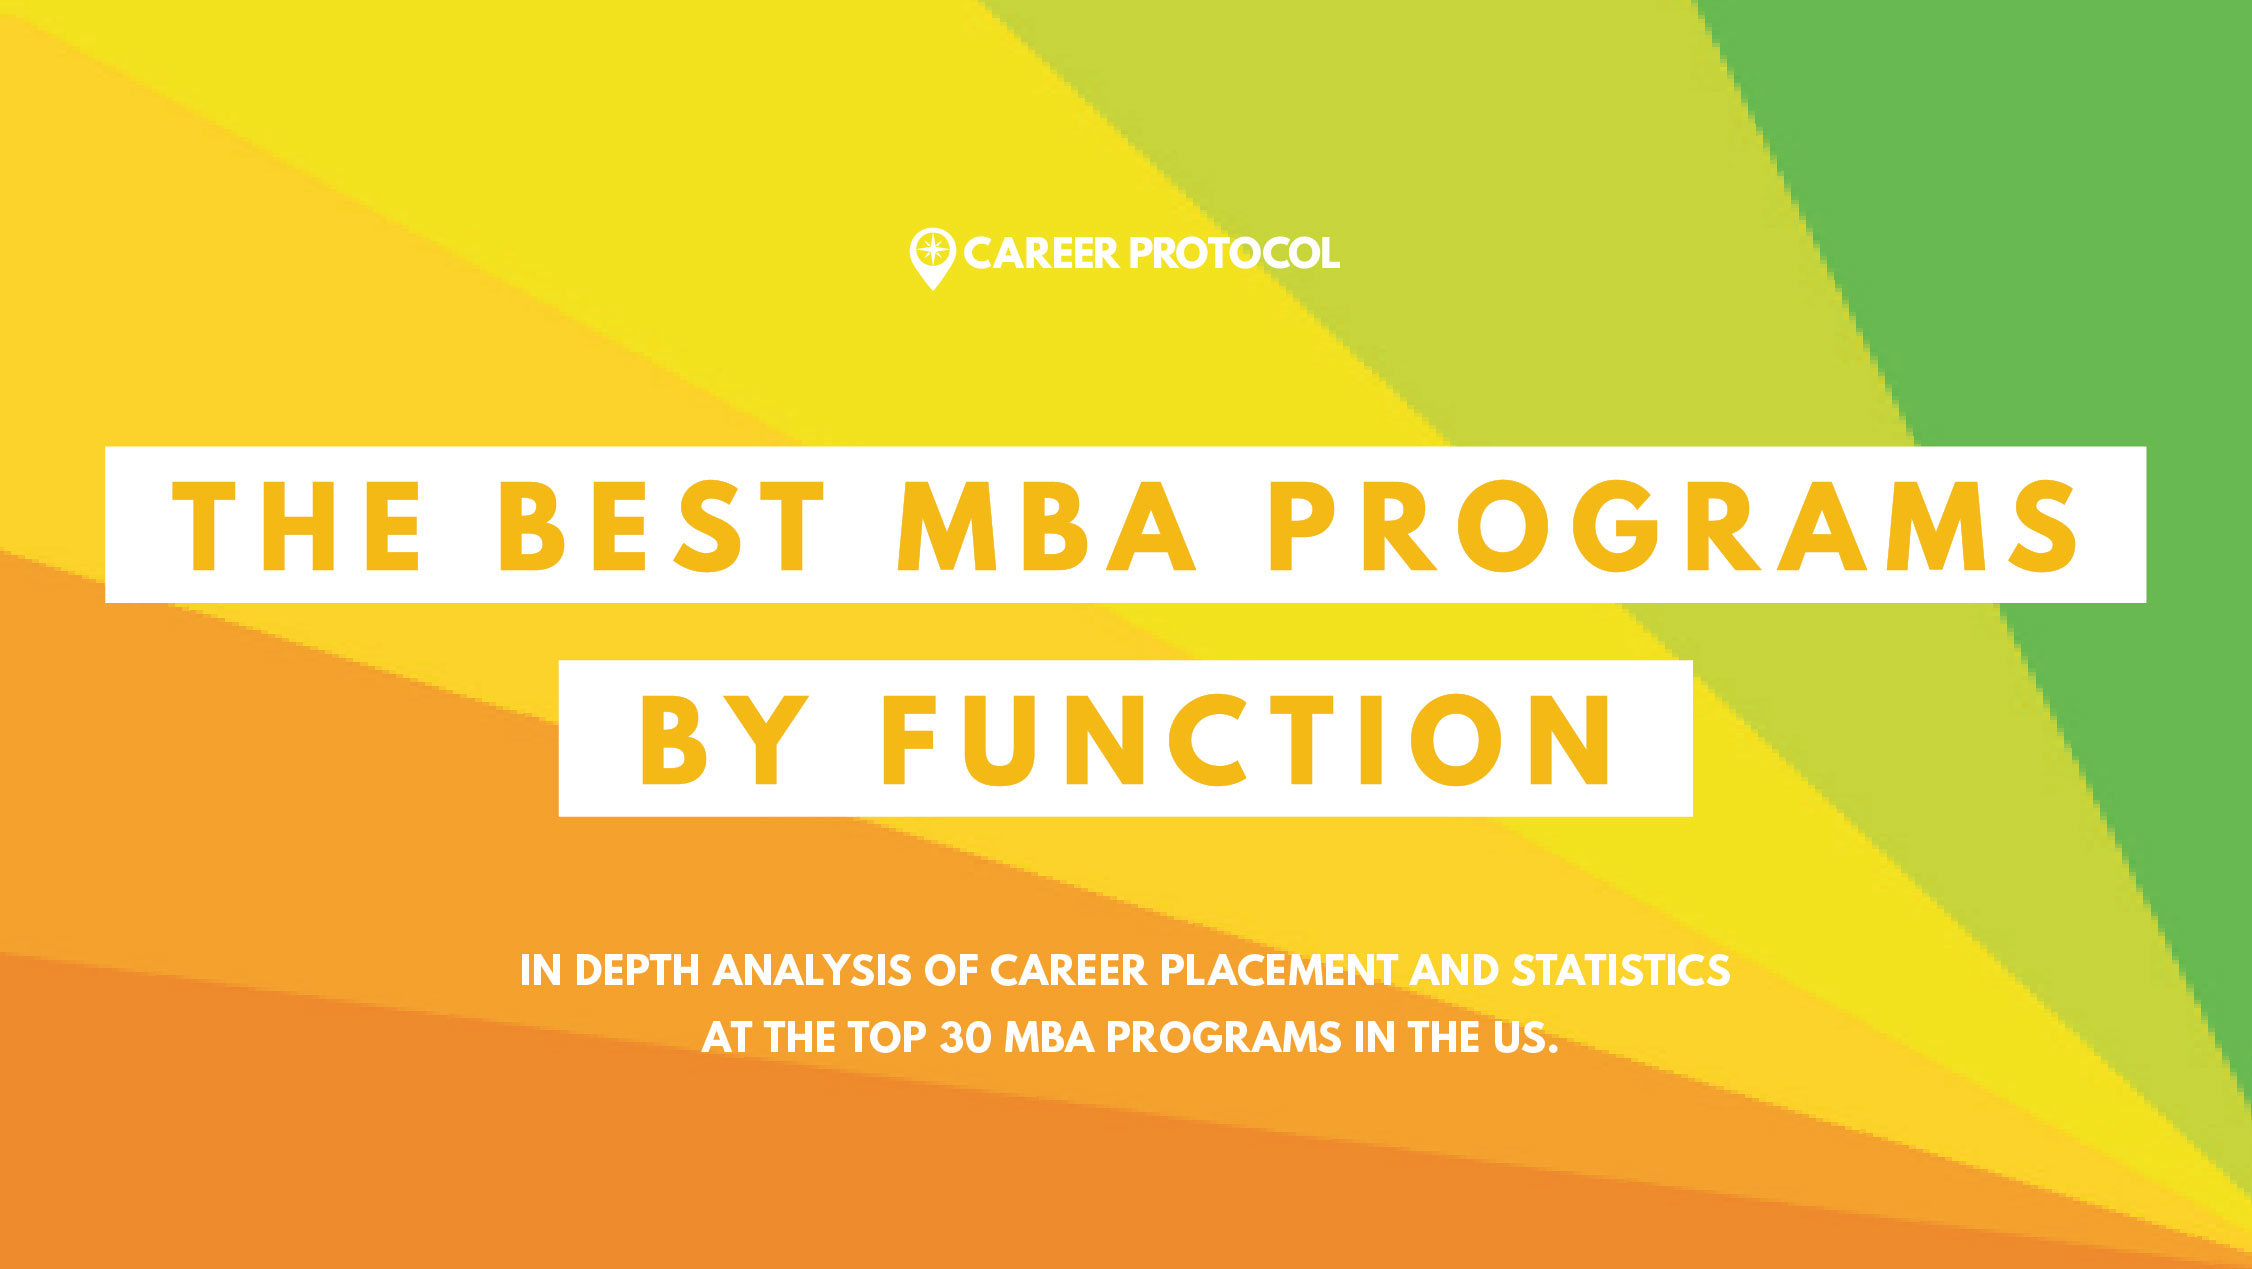 The Best MBA Programs by Function